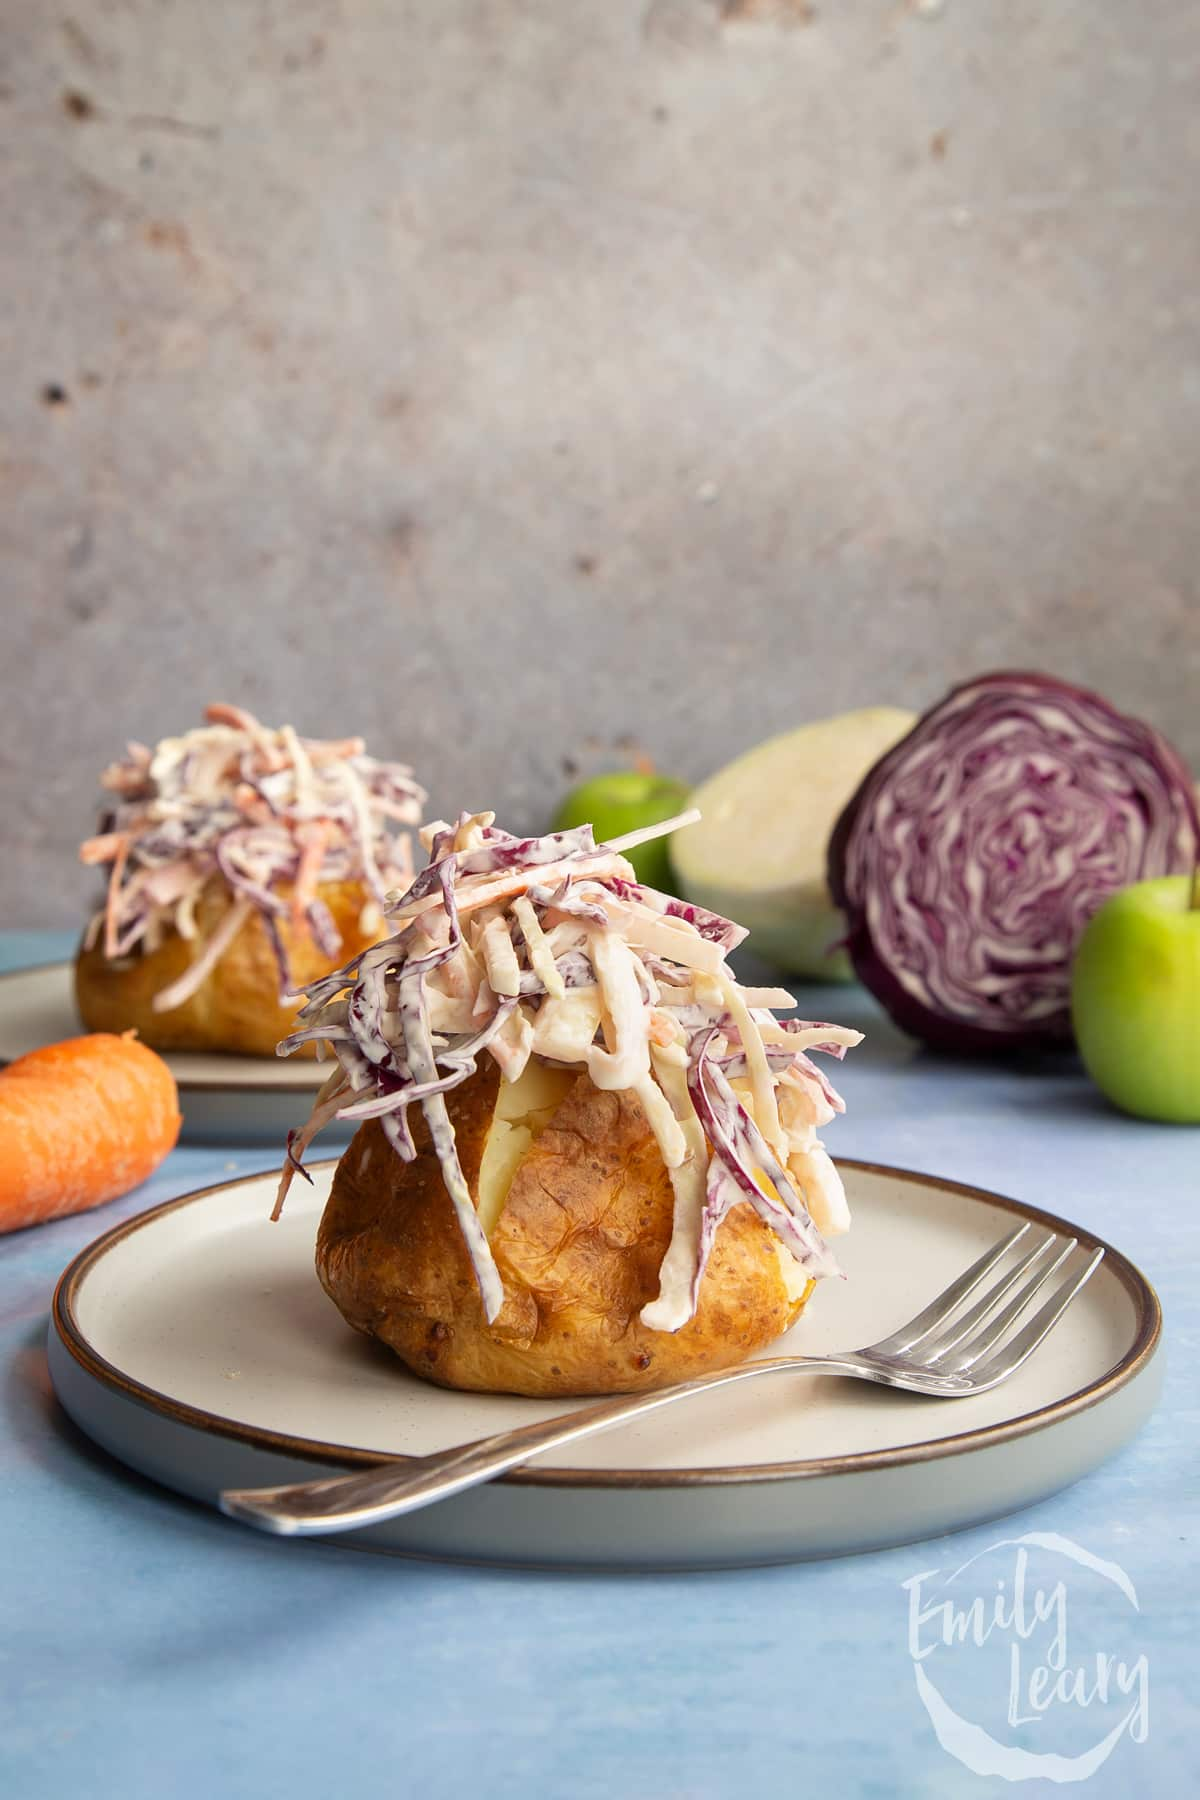 Jacket potato with homemade coleslaw on a plate with a fork.